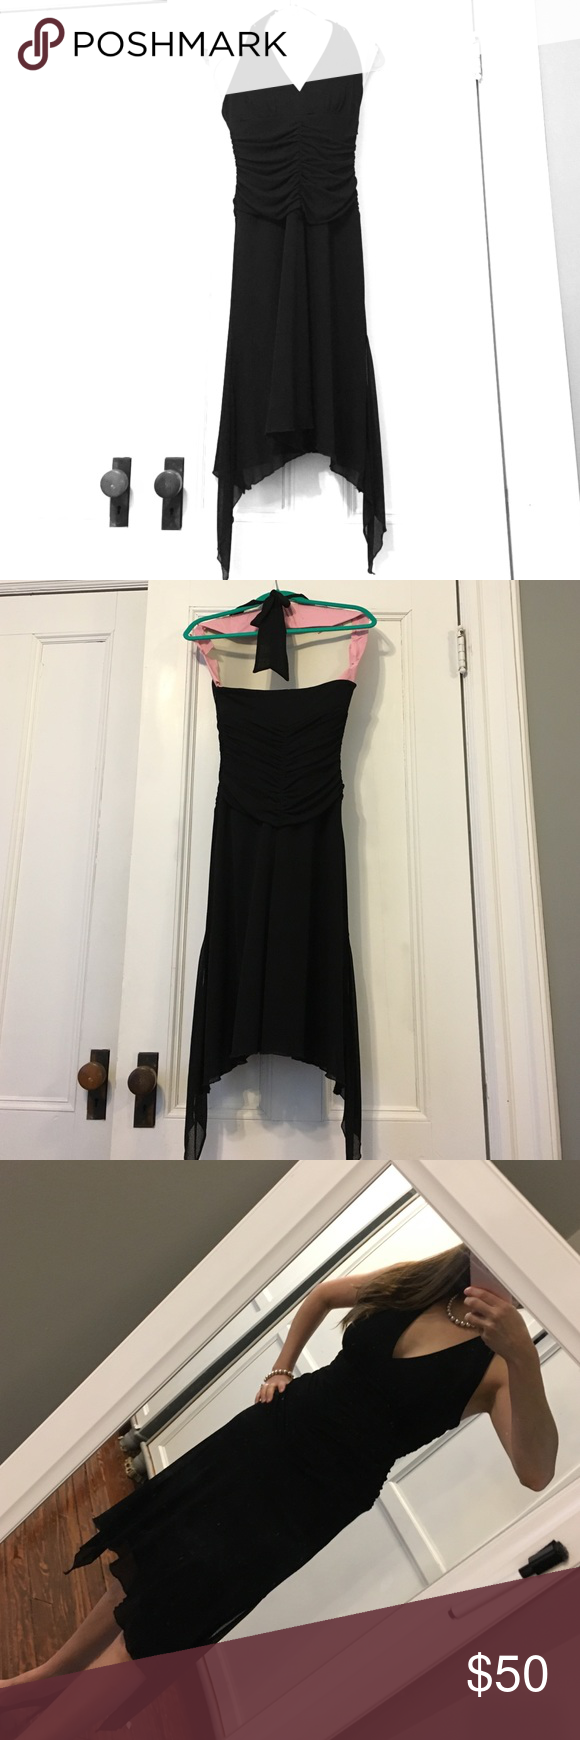 Asymmetrical black formal dress Laundry by Shelli Segal: Classic little black dress w asymmetrical hemline to make it unique!  Adjustable tie back halter top.  Side zip for easy dressing.  Ruching detail at torso is super flattering!  Worn once to a wedding, dry cleaned & never touched again! Everyone needs a little black dress! Perfection ❤ Laundry by Shelli Segal Dresses Asymmetrical